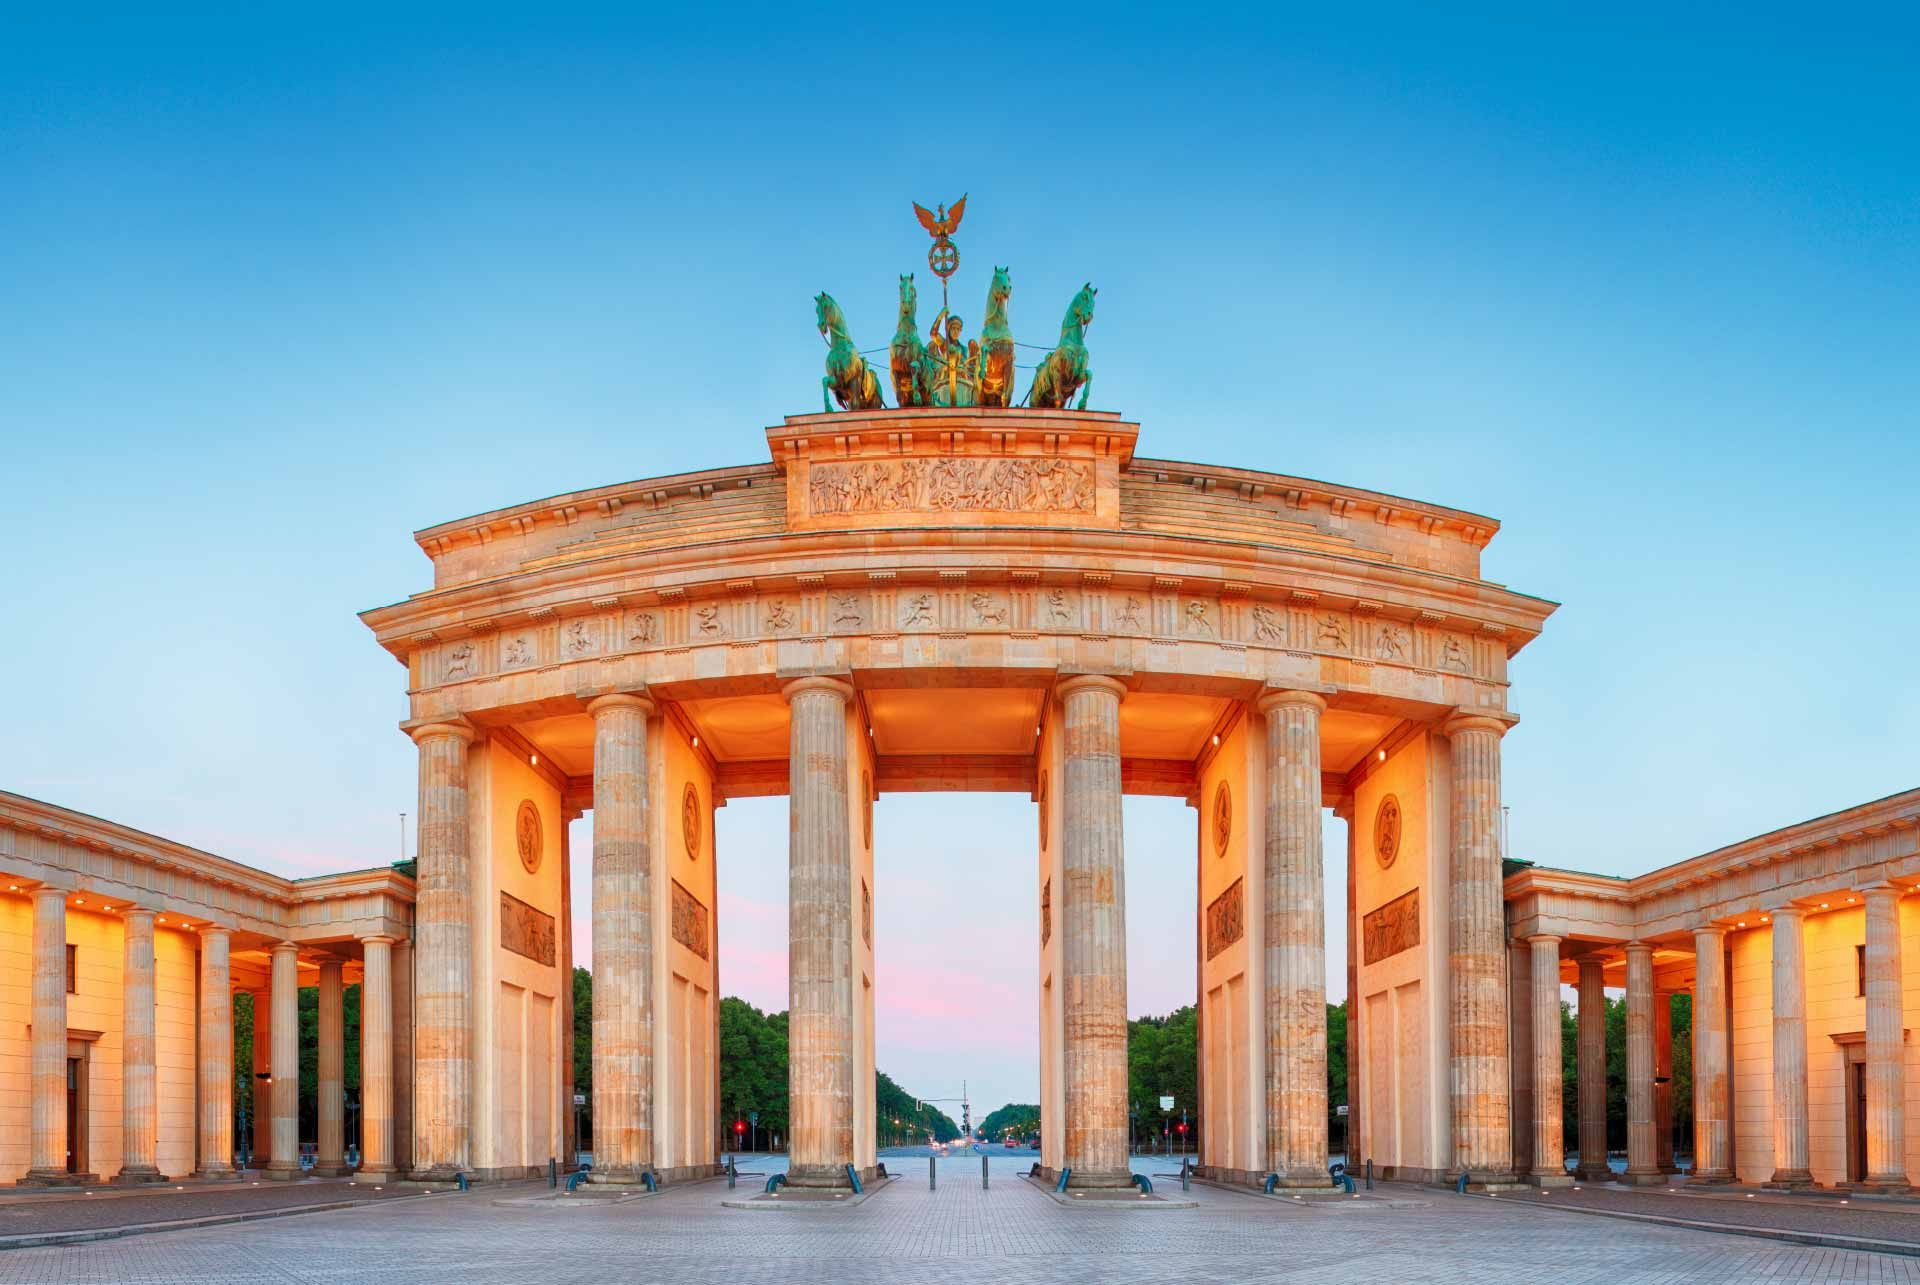 Walking tour of Berlin